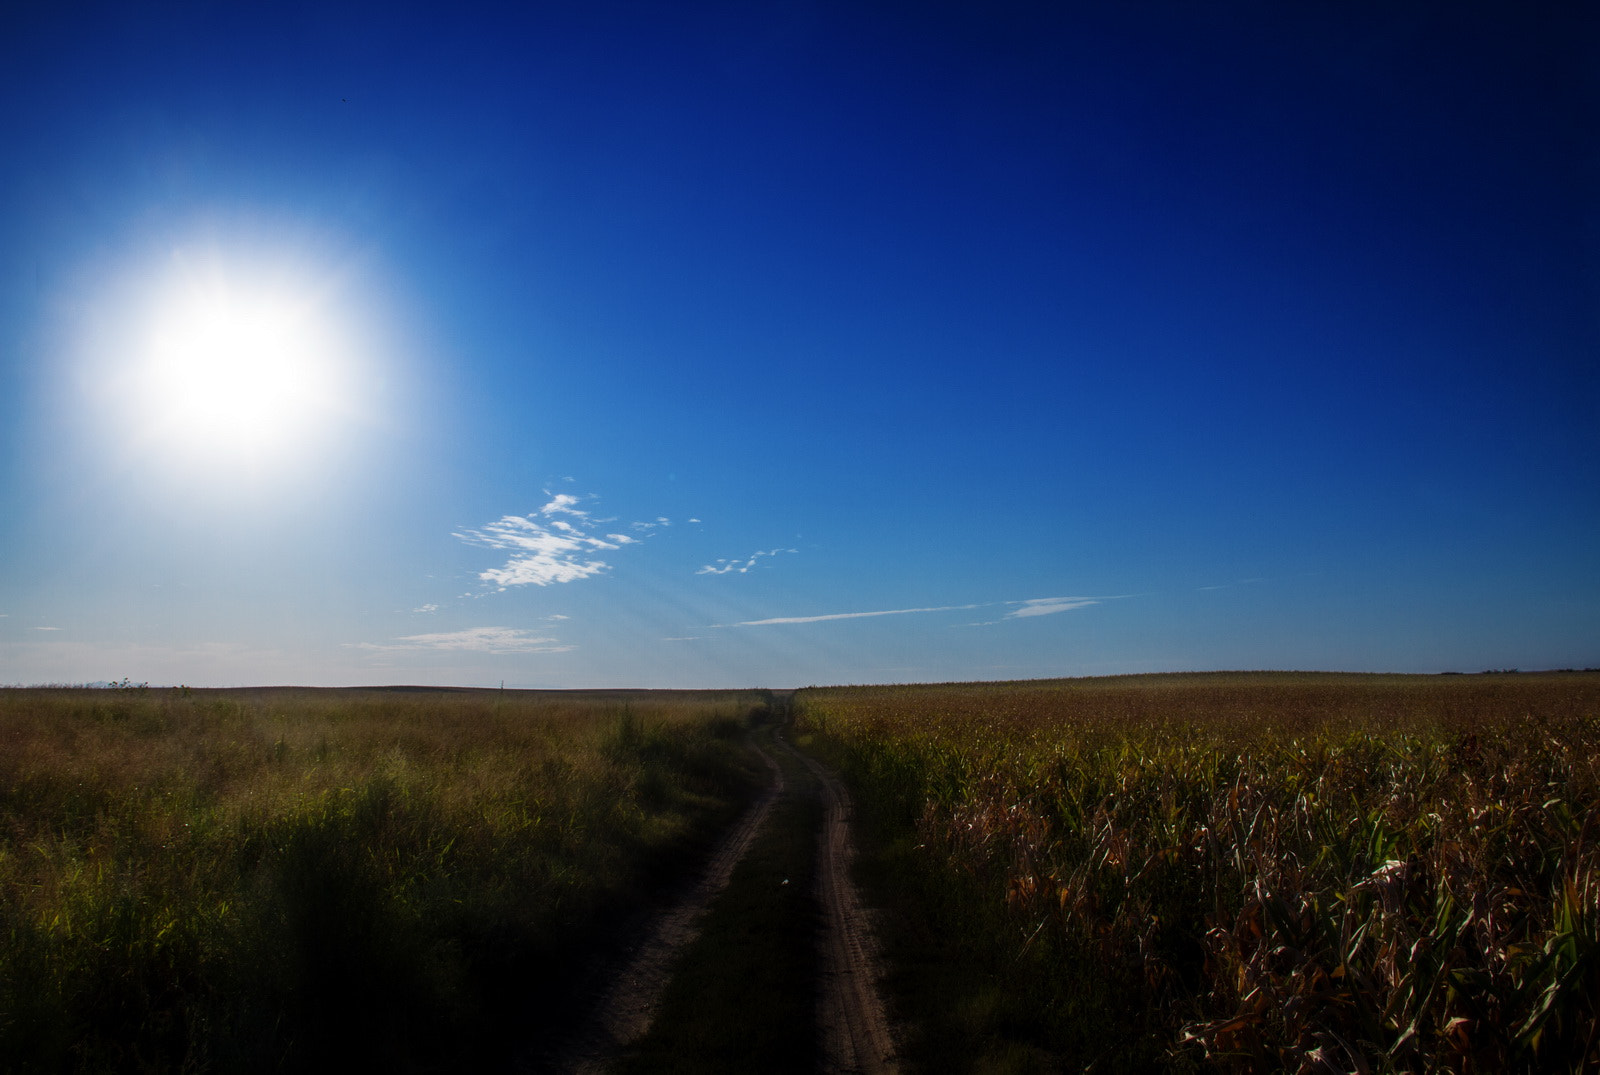 Photograph Road in the field by Damjan Dasic on 500px